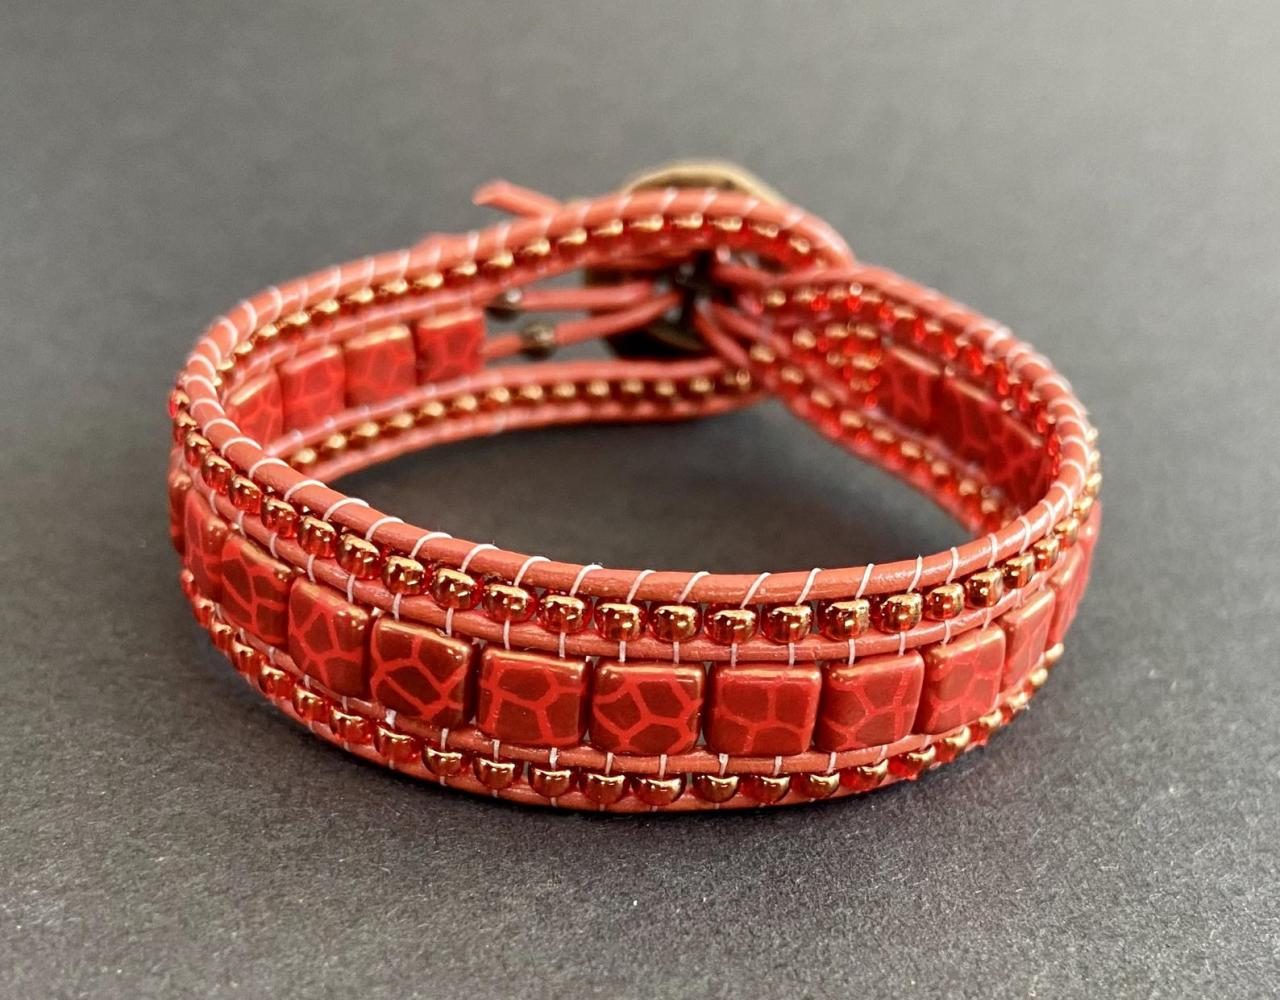 KIT Red Coral Giraffe Pattern Bracelet Cuff Leather 2-Holed Tile DIY Complete Instructions Crackled Bronze